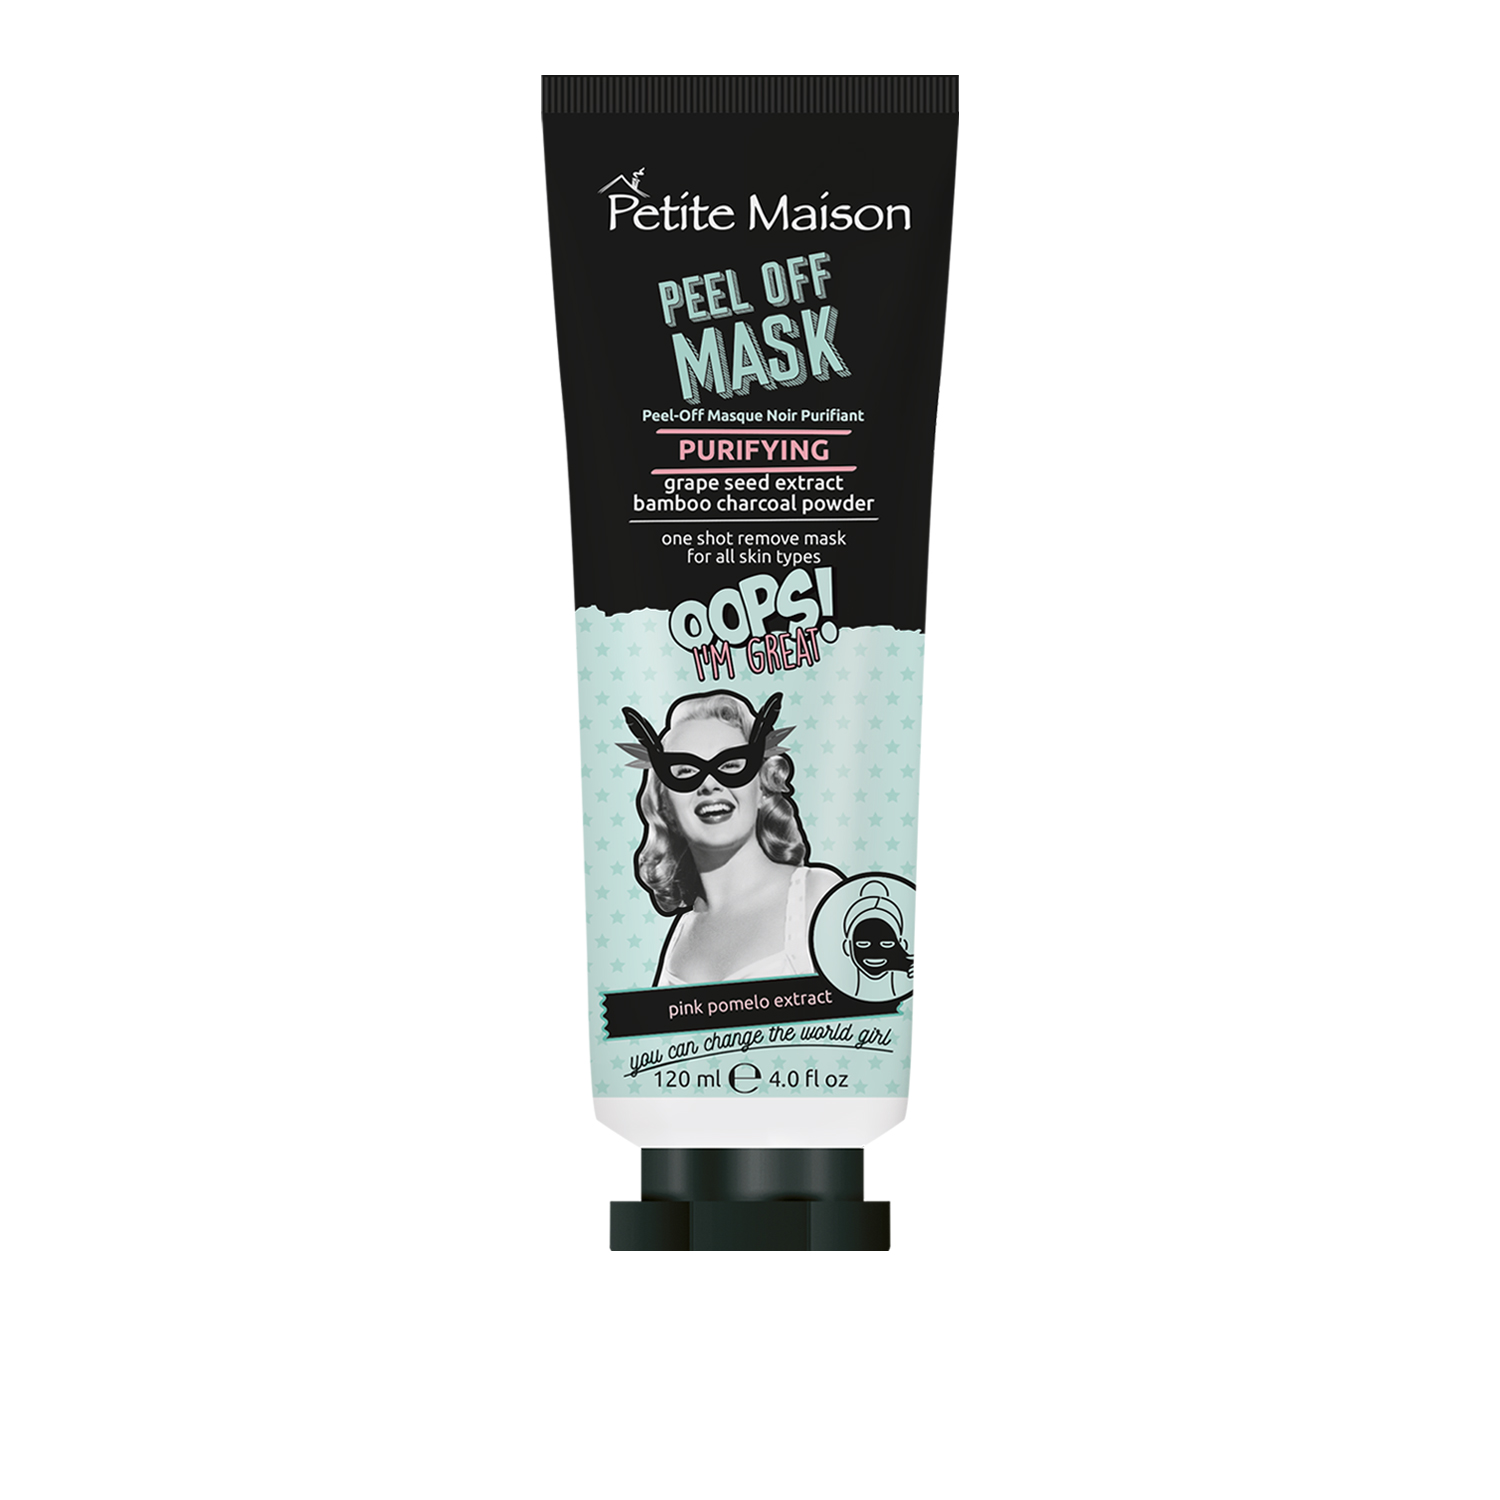 Petite Maison Peel Off Mask Purifying